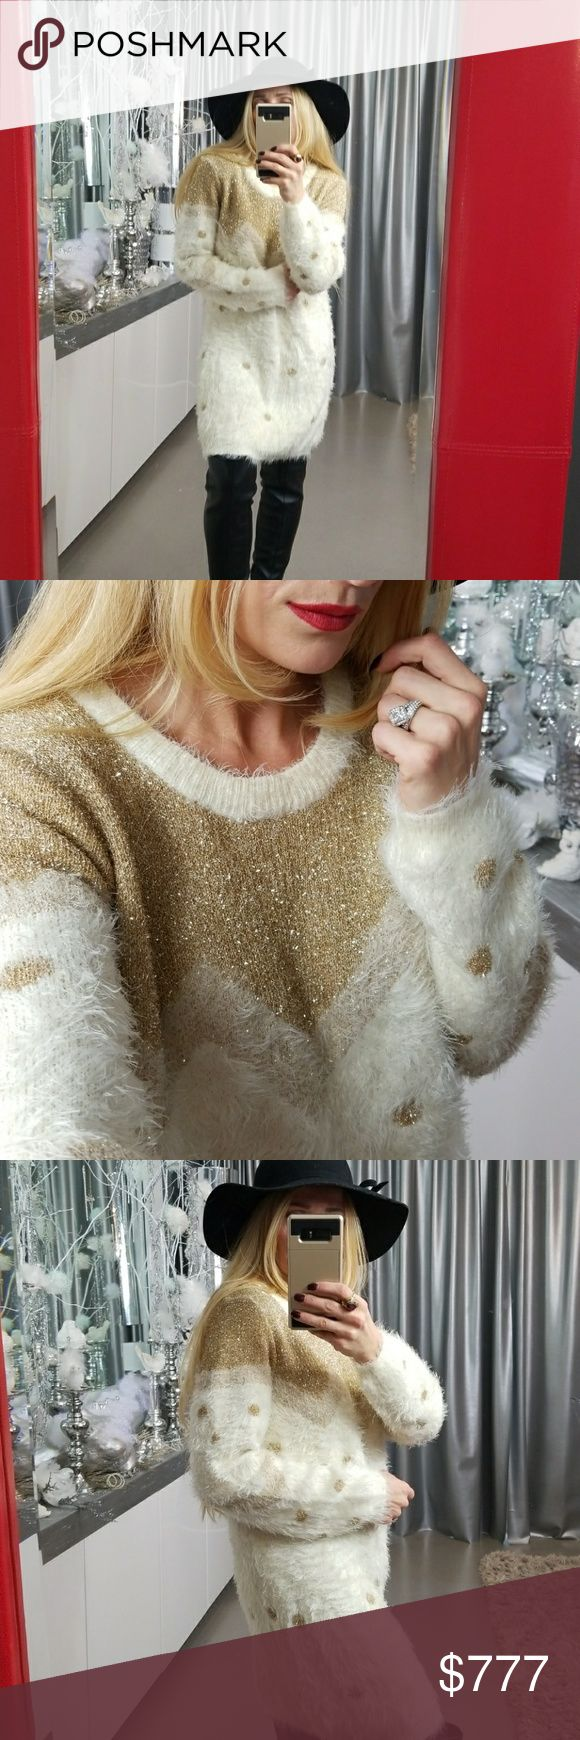 "FUZZY KNIT GOLD METALLIC DETAILS SWEATER Brand new with tag  Beautiful and cozy cream FUZZY sweater with gold metallic threaded details. A MUST HAVE fornthe upcoming holiday and cooler weather!!!  Length 30"" Bust 20-29"" across  Material 86% nylon 14%metallic . Sweaters Crew & Scoop Necks"